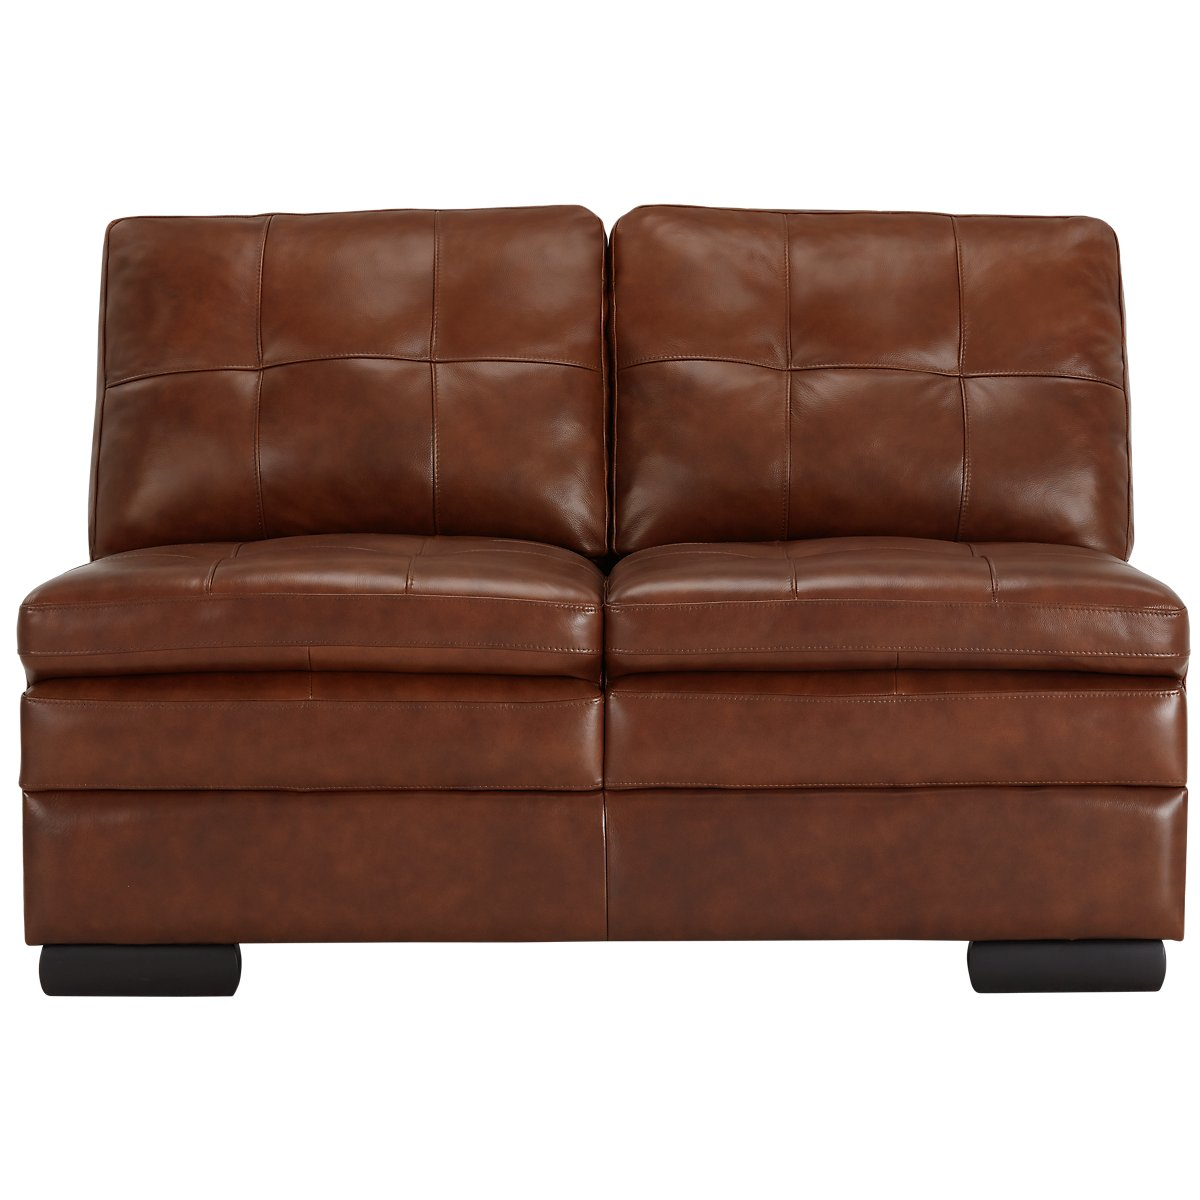 City furniture trevor medium brown leather small right for Brown sectionals with chaise